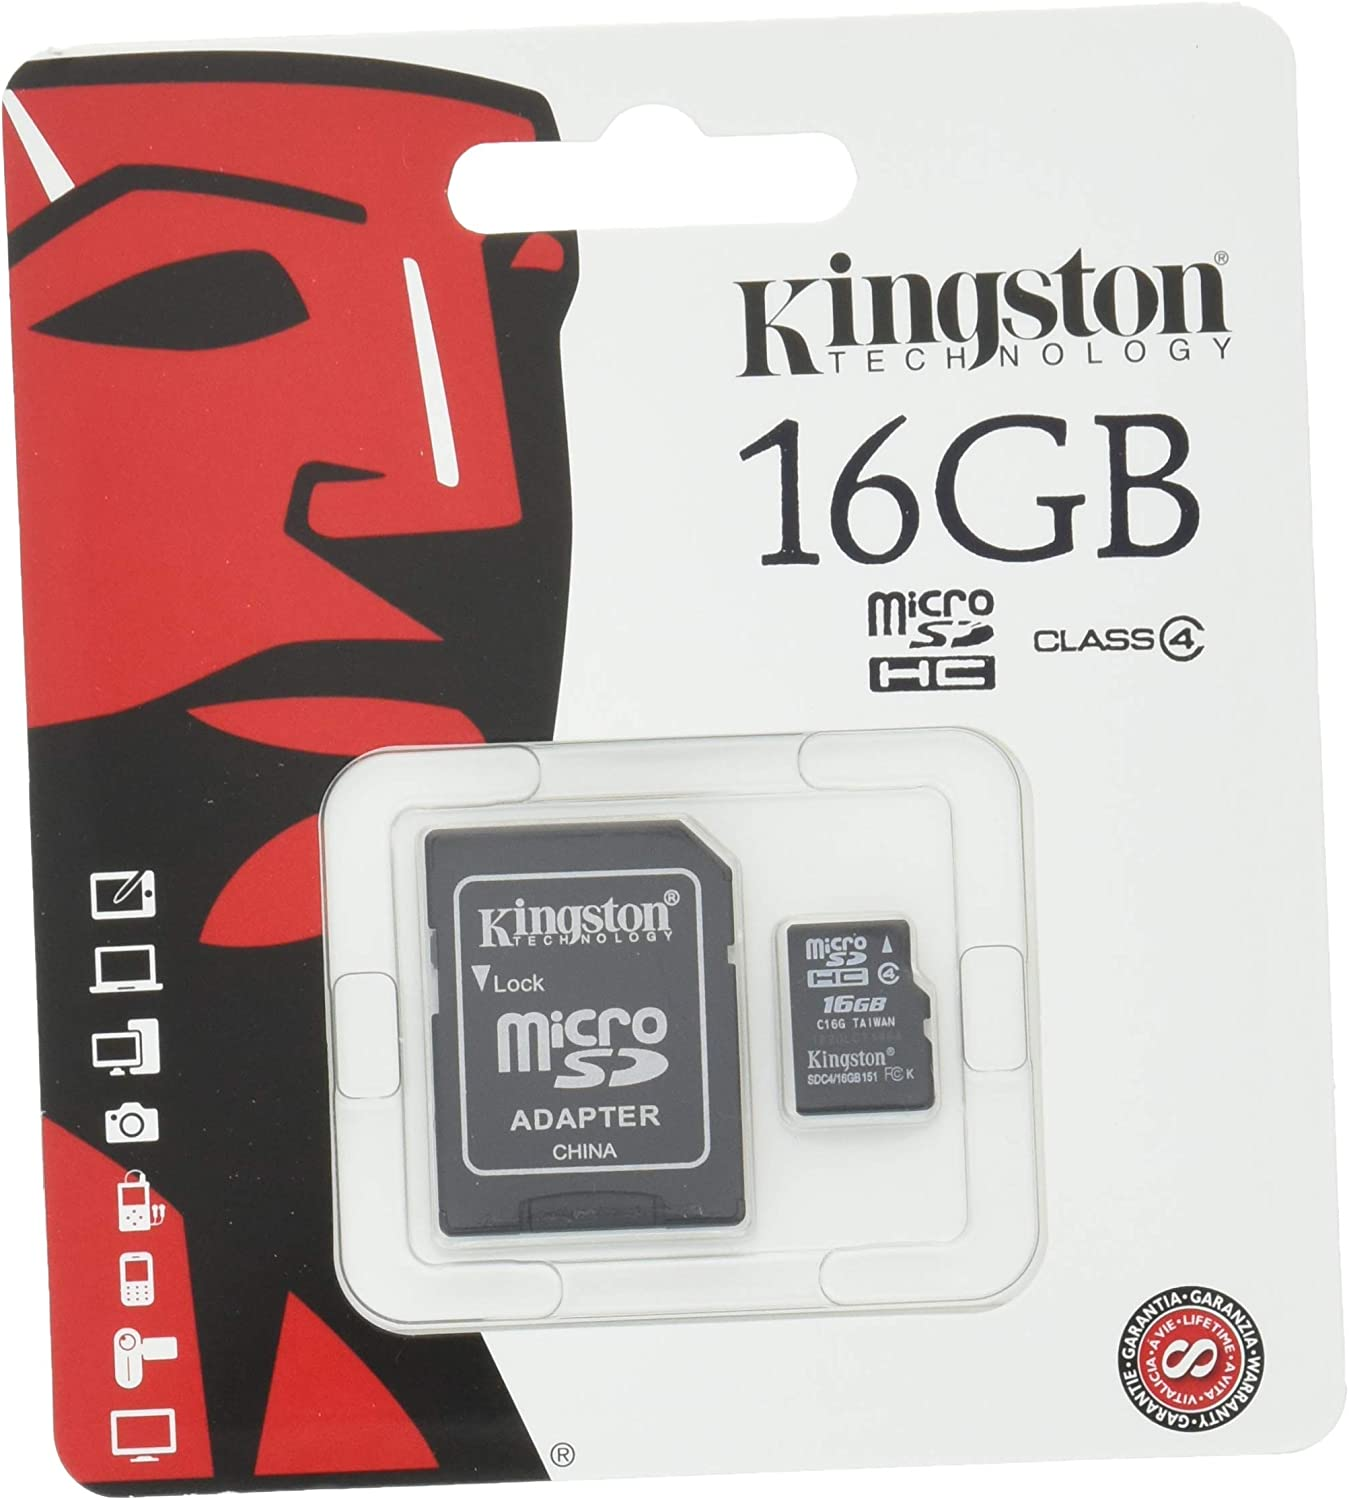 . Class 4 Professional Kingston 16GB MicroSDHC Card for Motorola CDMA Smartphone with custom formatting and Standard SD Adapter.